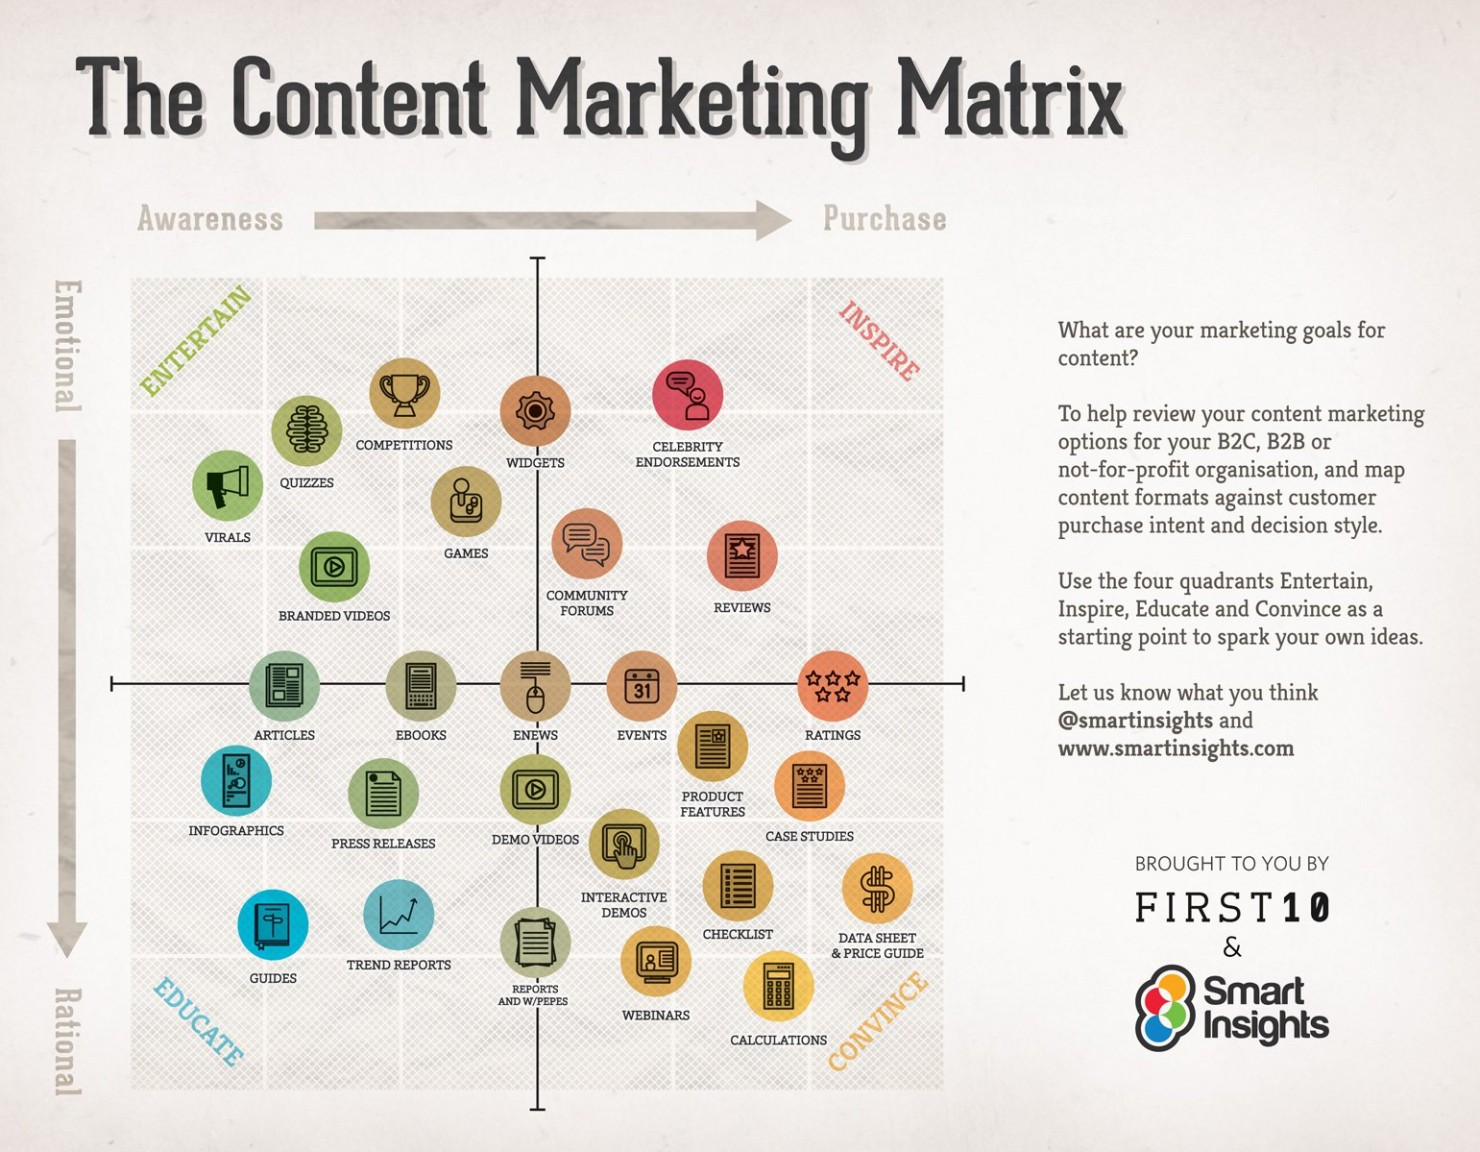 content-matrix-smart-insights-740x5762x